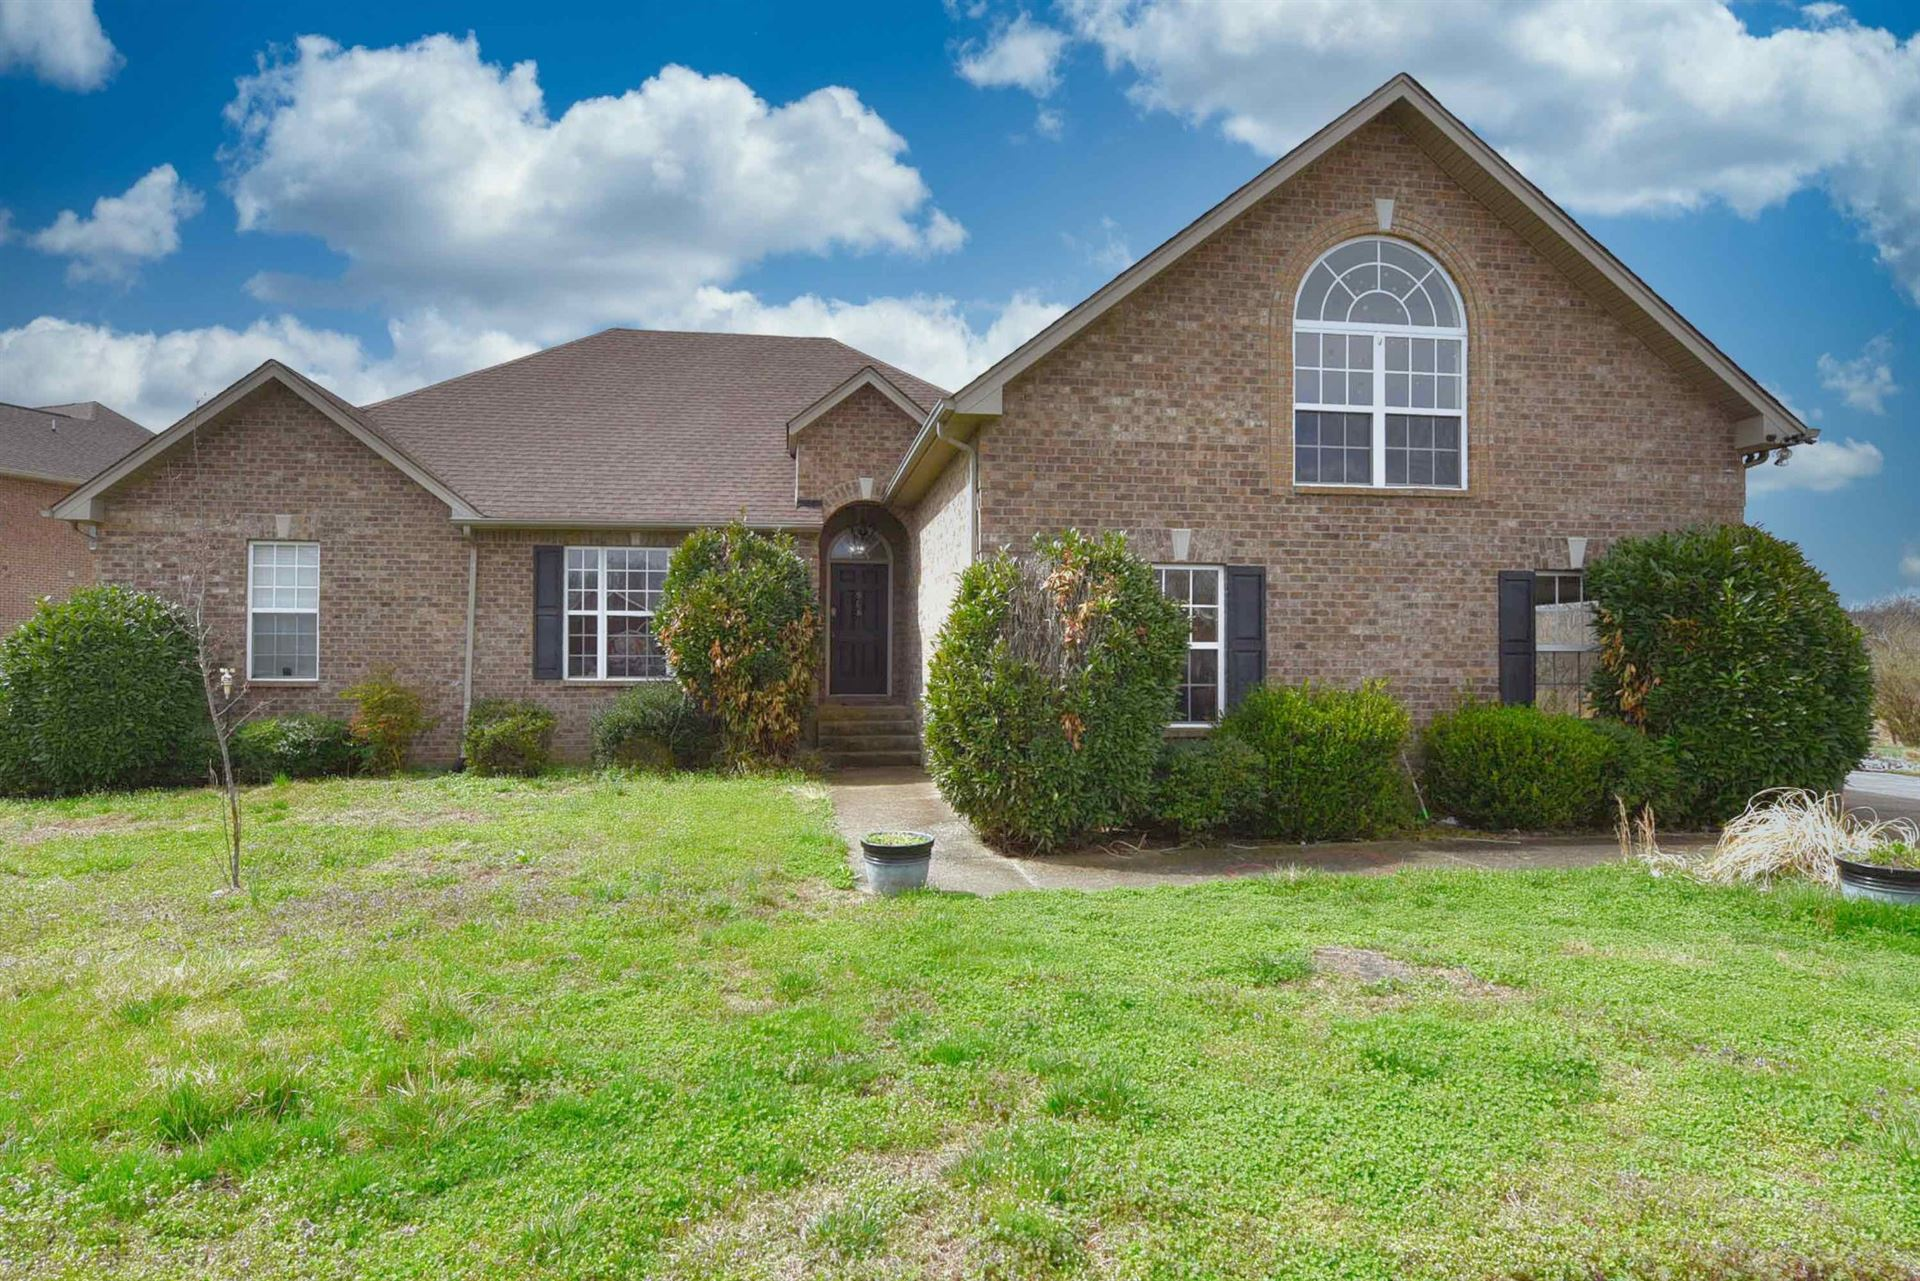 908 Weststar Ct, Old Hickory, TN 37138 - MLS#: 2237116